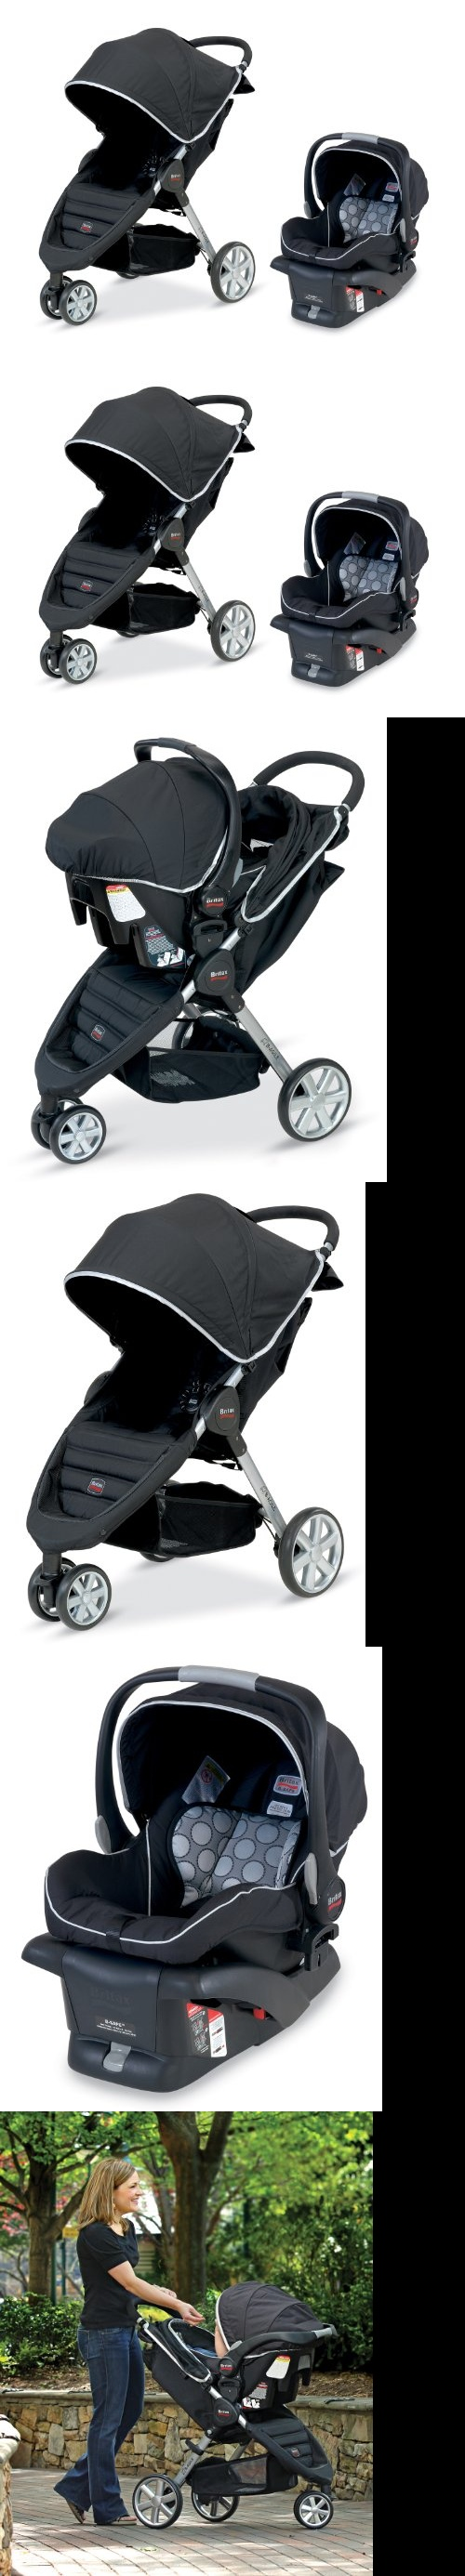 Britax B-Agile and B-Safe Travel System, Black - The B-Agile Stroller from Britax is a lightweight, compact stroller featuring a one-hand, quick-fold design with an automatic chassis lock. The B-Agile is also compatible with other major manufacturer... - Travel Systems - Baby$294.00